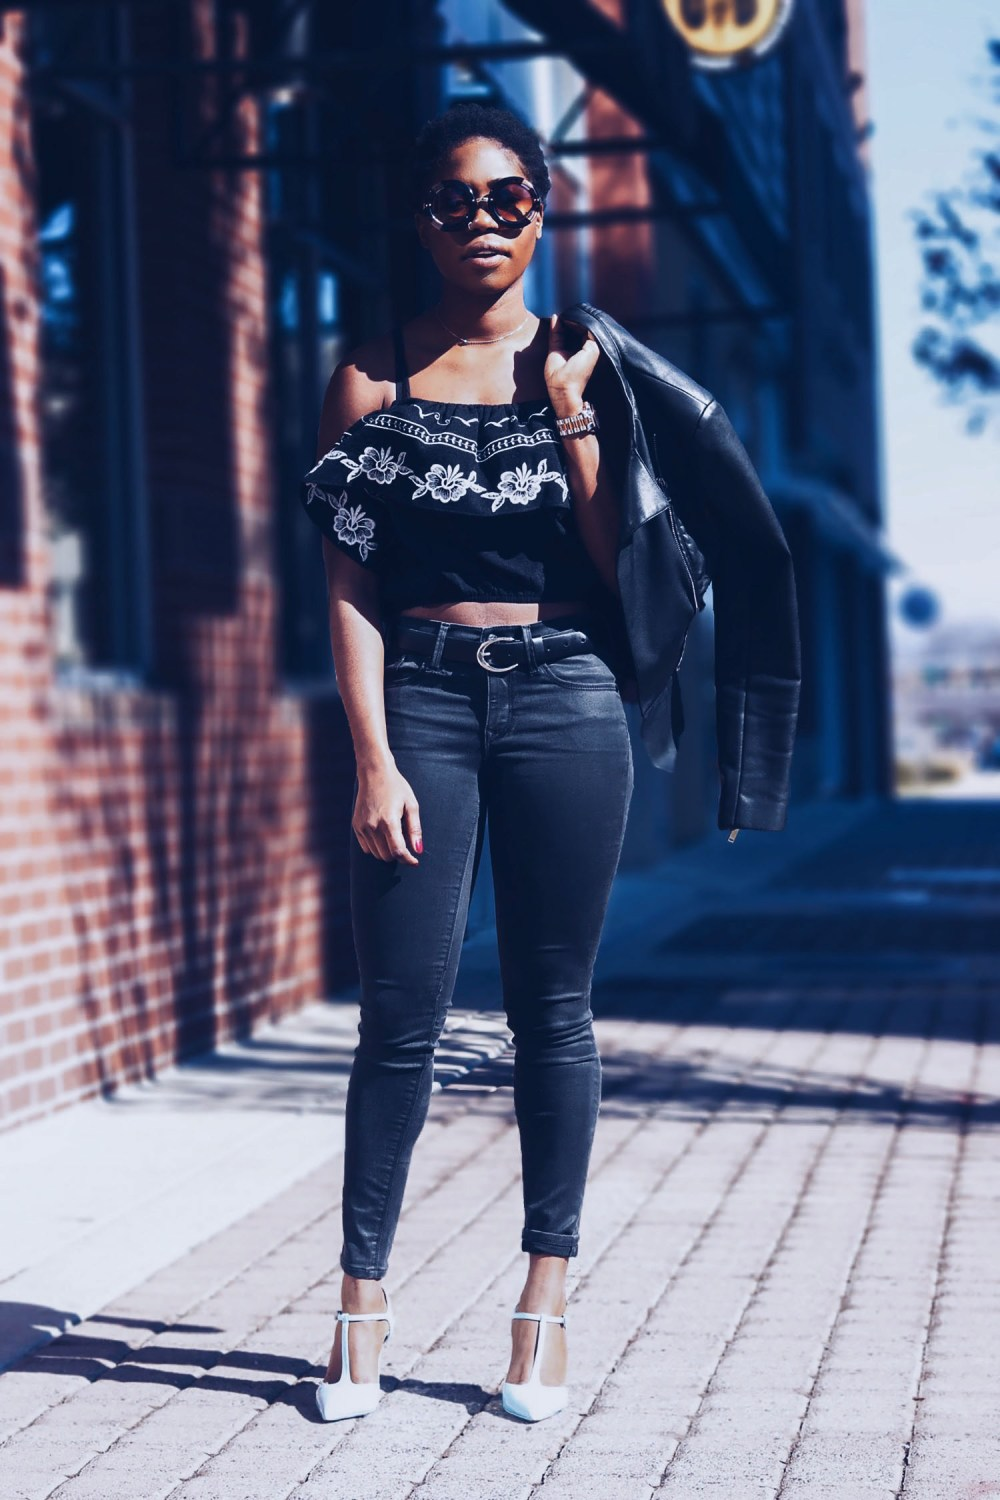 style-synopsis-embriodered-top-leather-jeans